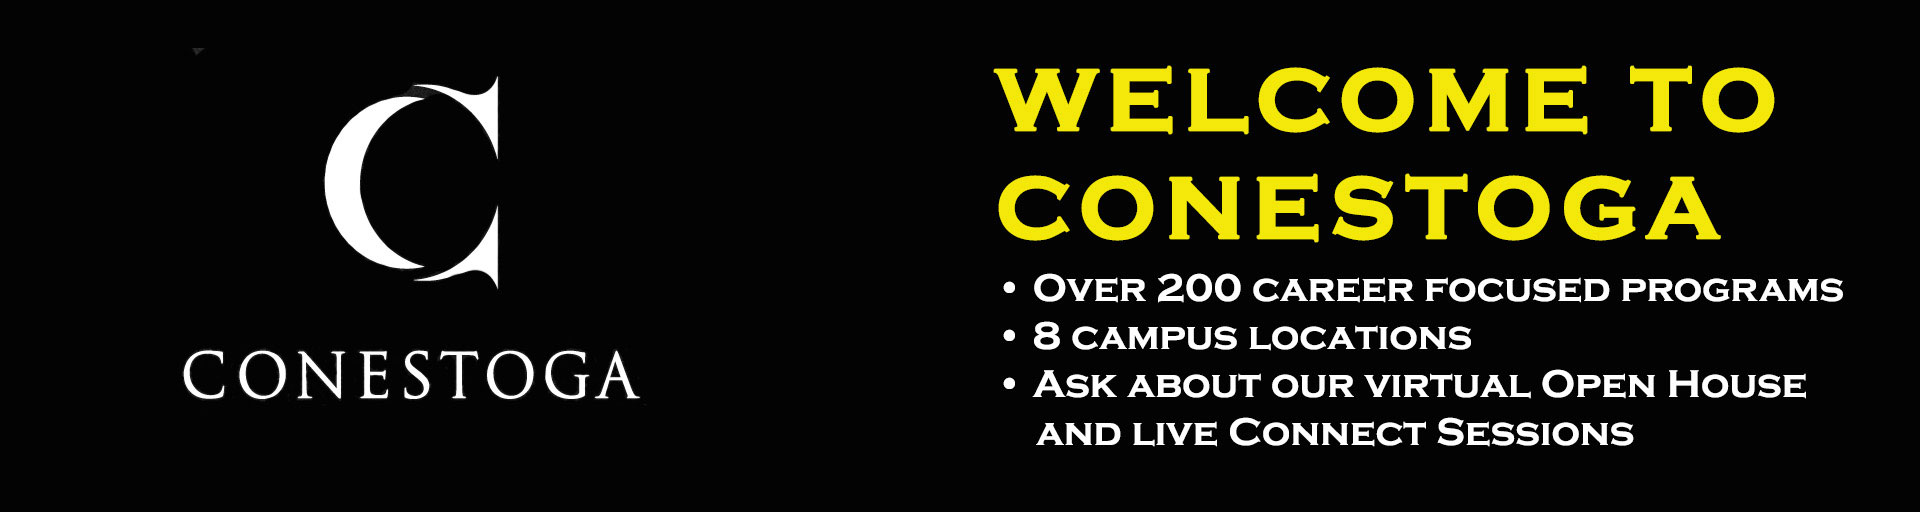 Welcome to Conestoga. Over 200 Career focused programs. 8 Campus Locations. Ask us about our virtual open house and live connect sessions.